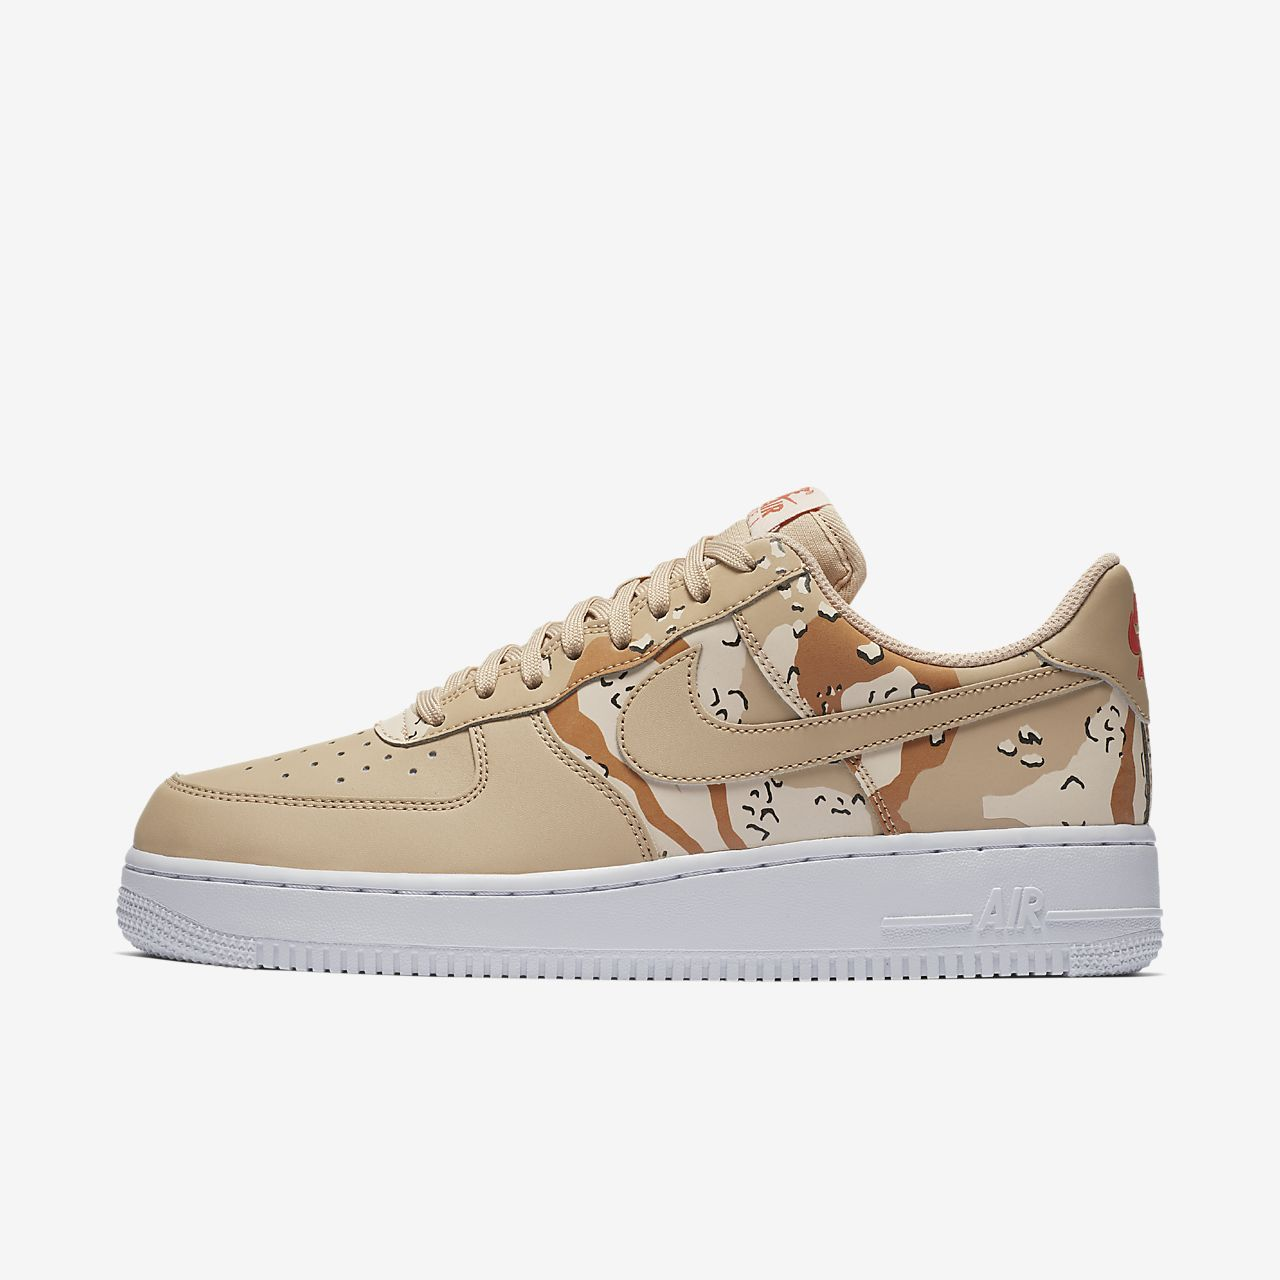 Nike Air Force 1 07 LV8 Hommes Trainers 823511 Sneakers Chaussures 700 fCgCFDZb